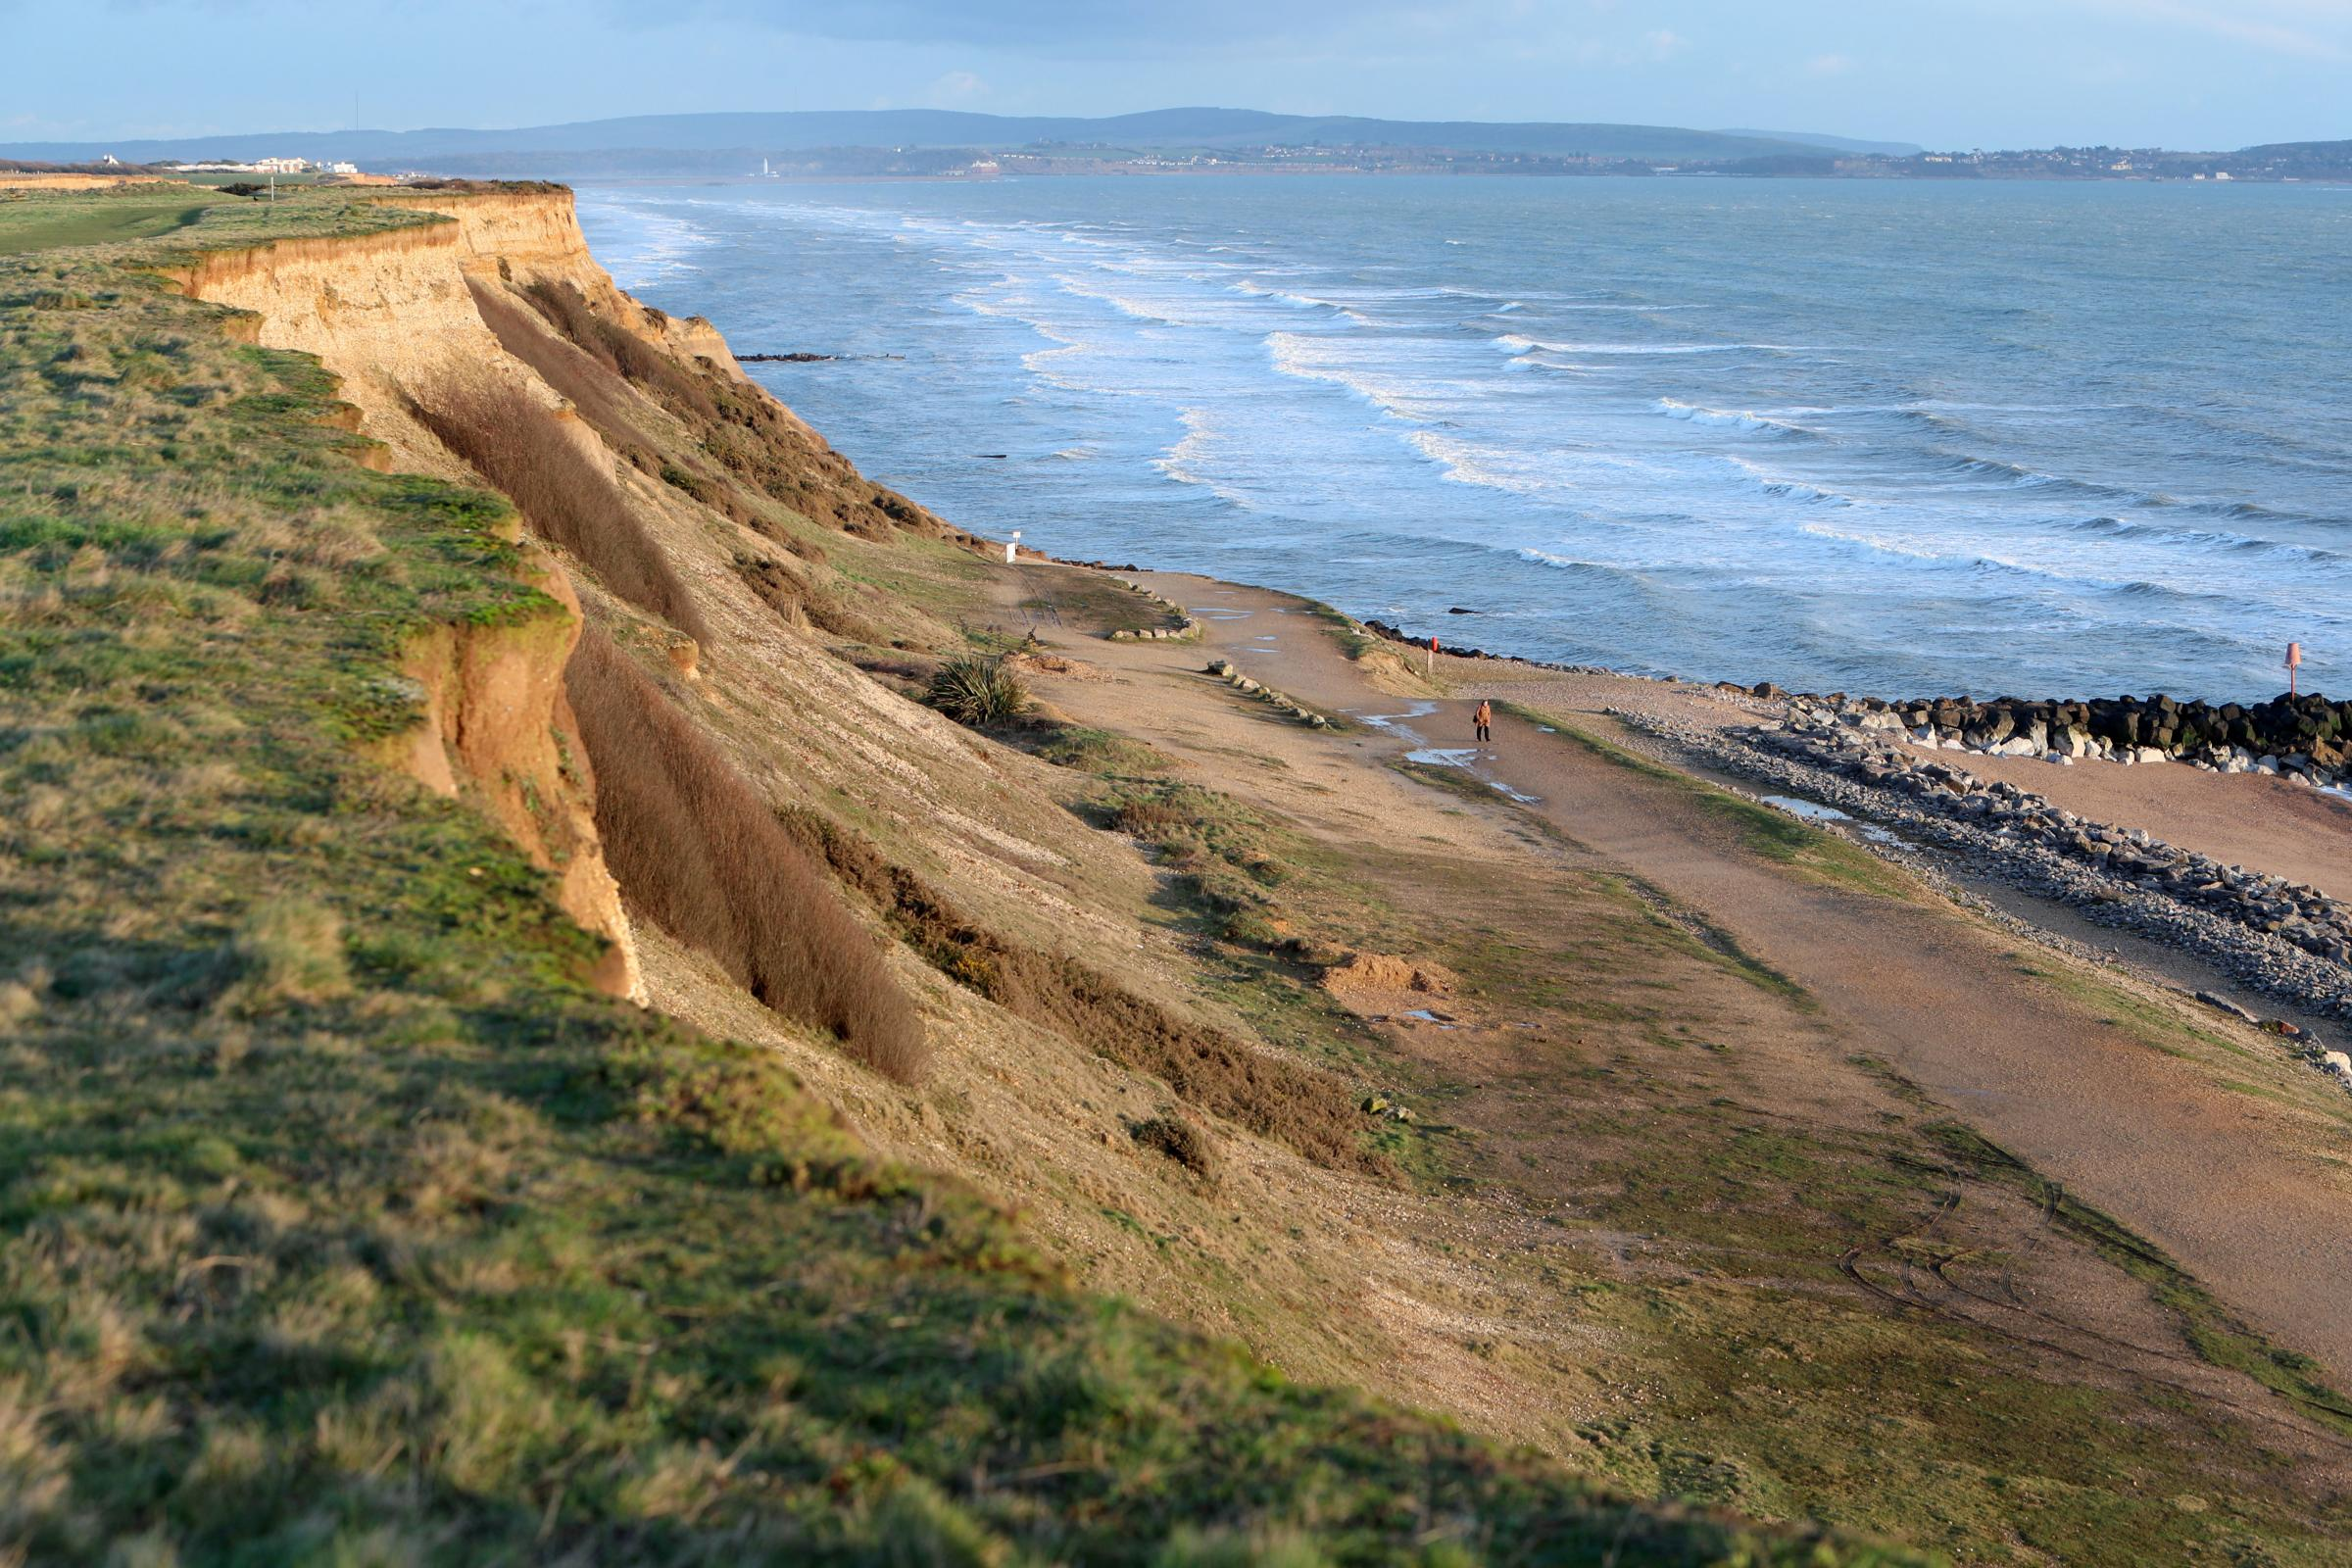 The cliffs at Barton-On-Sea including signs warning of unstable cliffs. ..